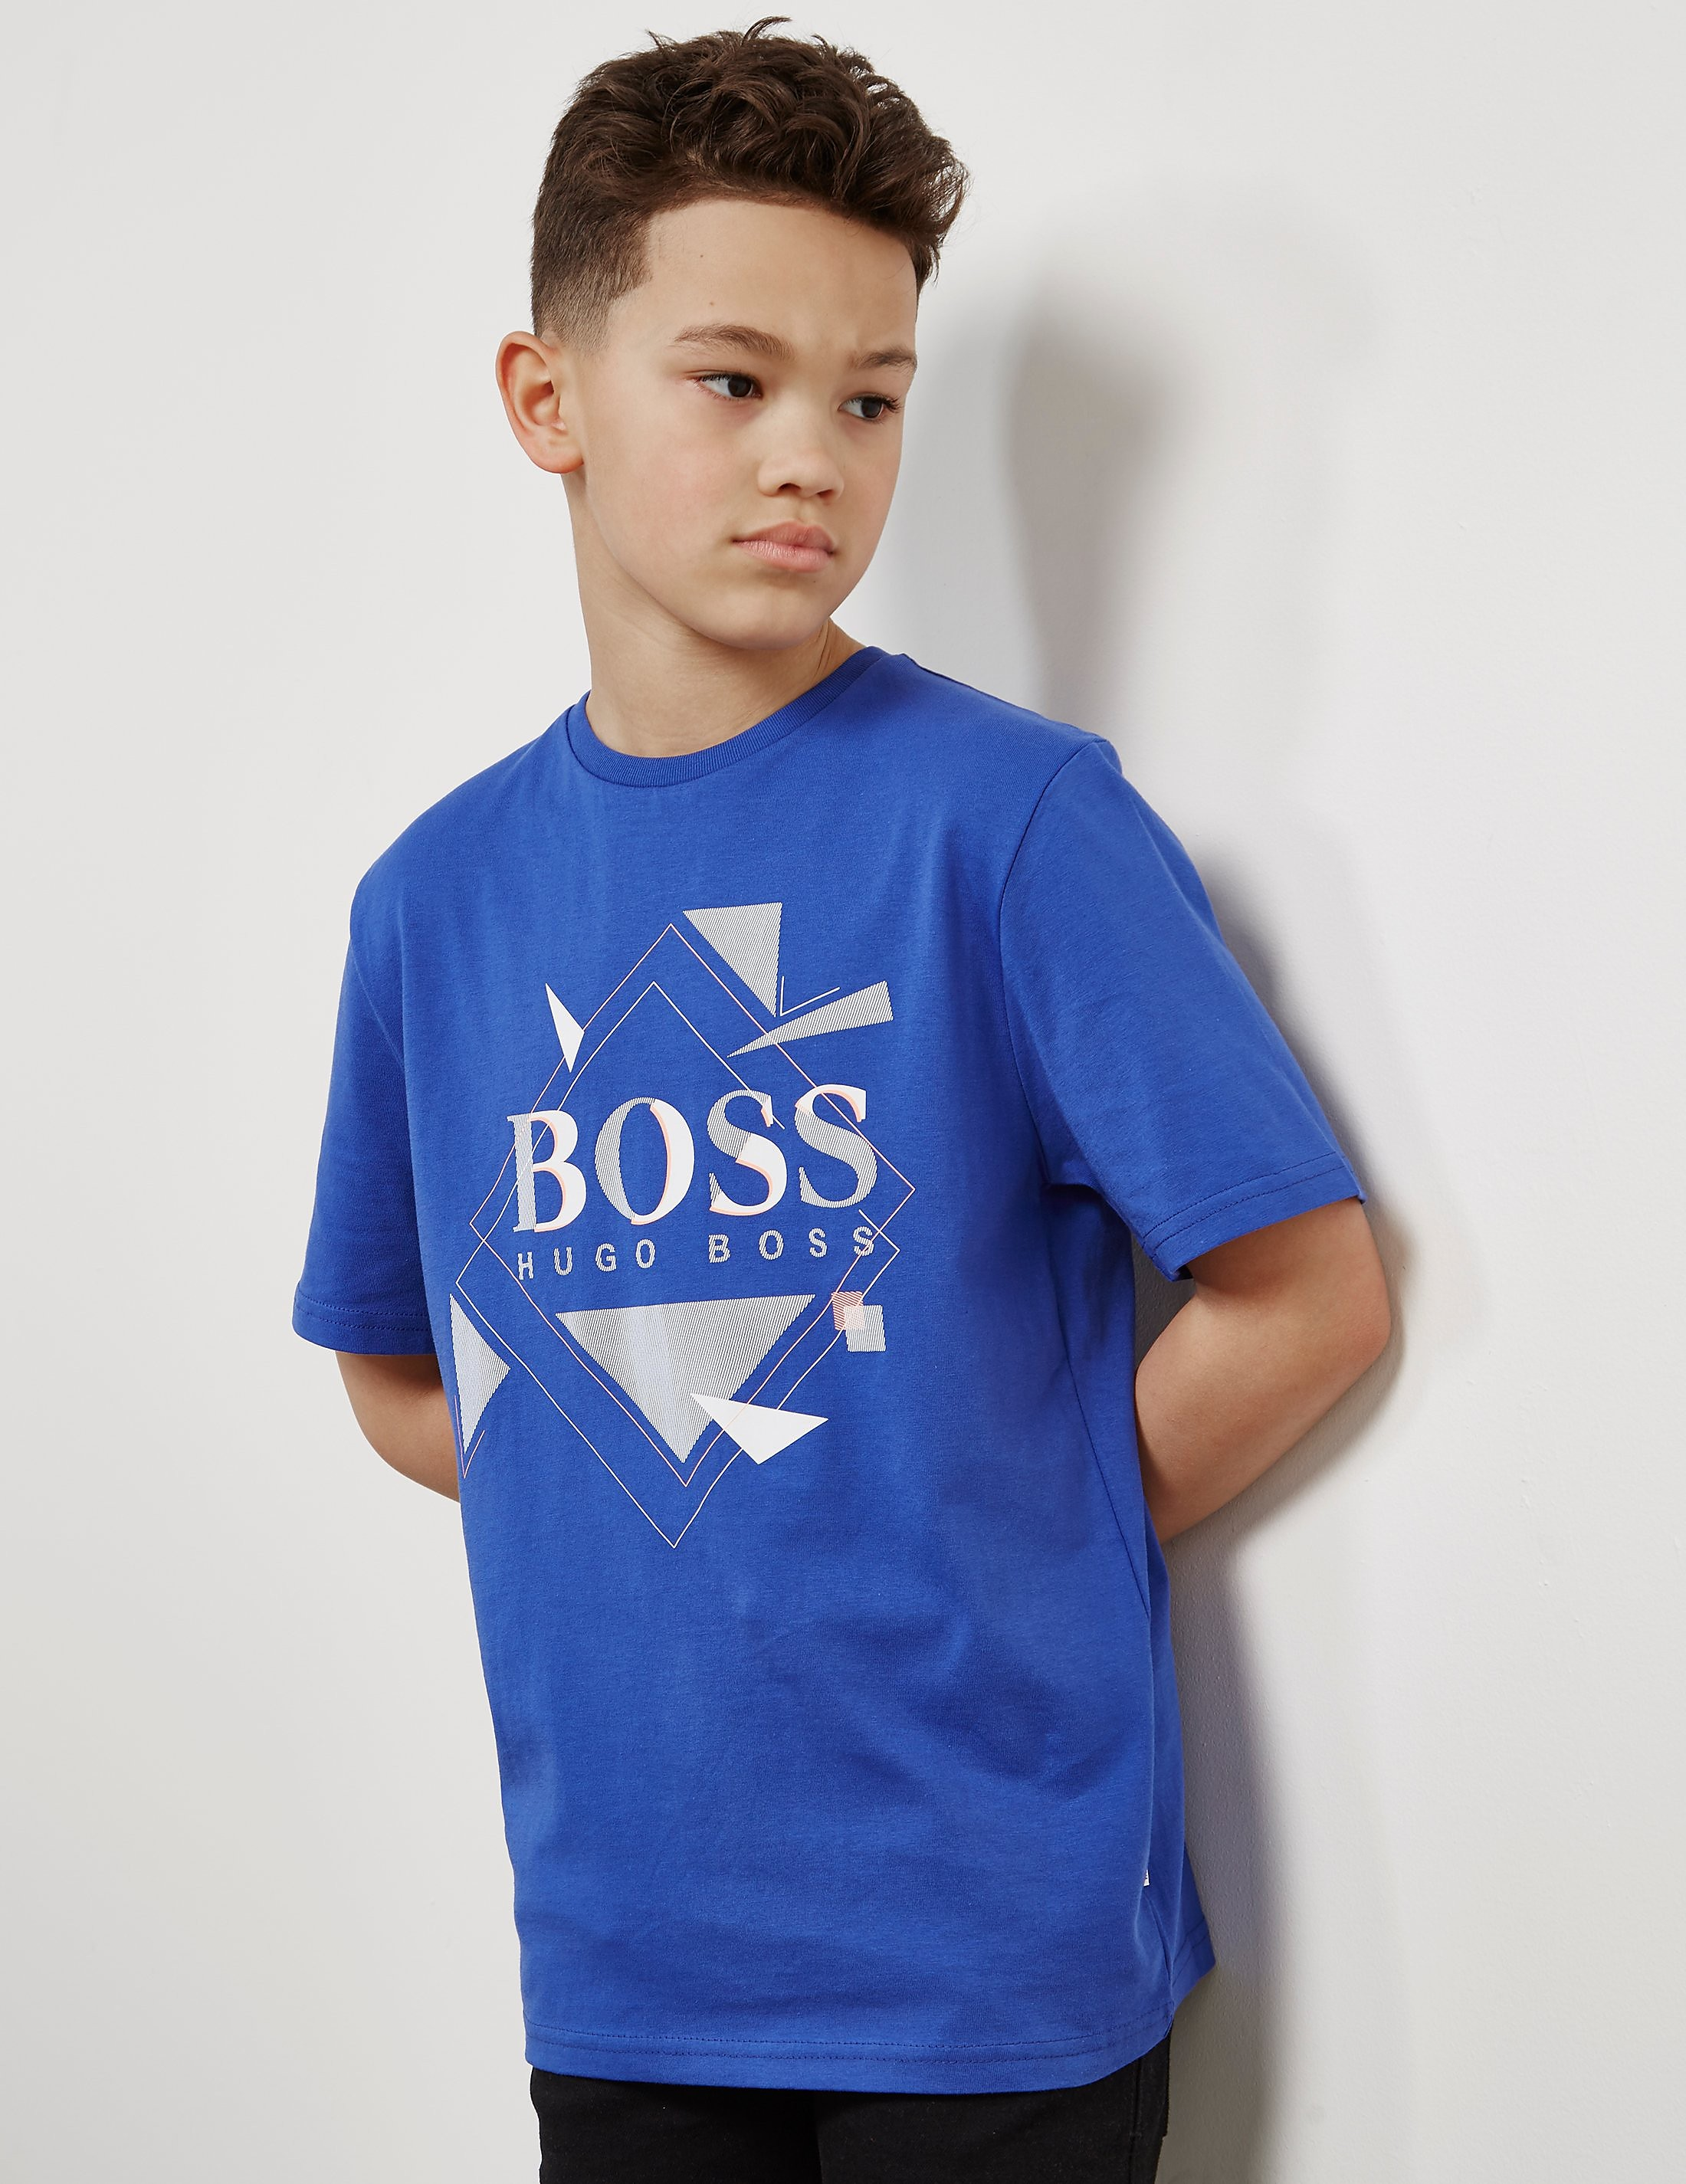 BOSS Kids Shapes Short Sleeve T-Shirt